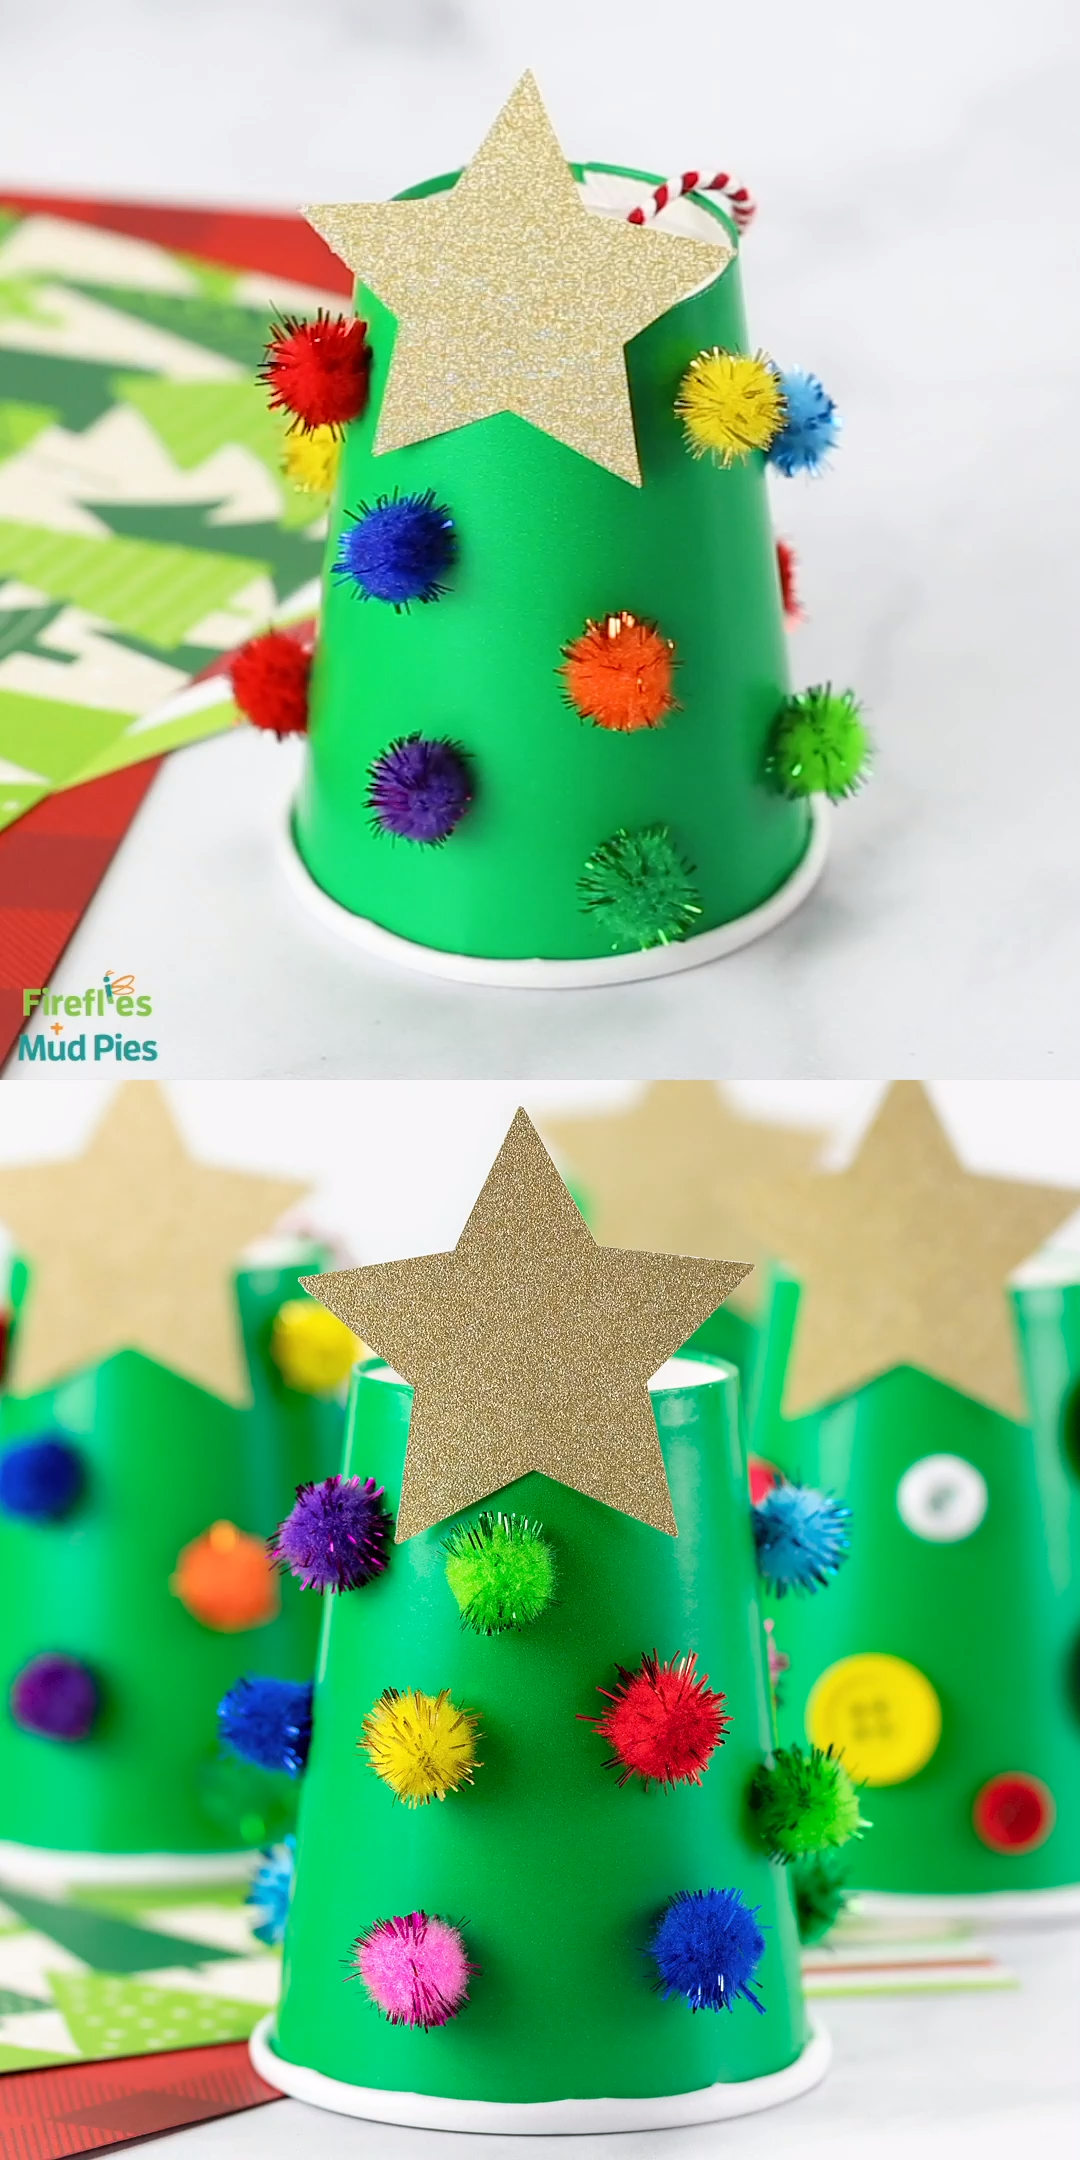 Are you looking for an inexpensive, mess-free, and super easy Christmas craft for kids? We've got you covered! This fun little Paper Cup Christmas Tree is simple enough for toddlers, preschoolers, kindergartners, and older kids like tweens. Minimal, inexpensive supplies make it the perfect handmade Christmas ornament for home, the classroom, or for community holiday programs. #christmascraft #kids #preschool #pintowin2019